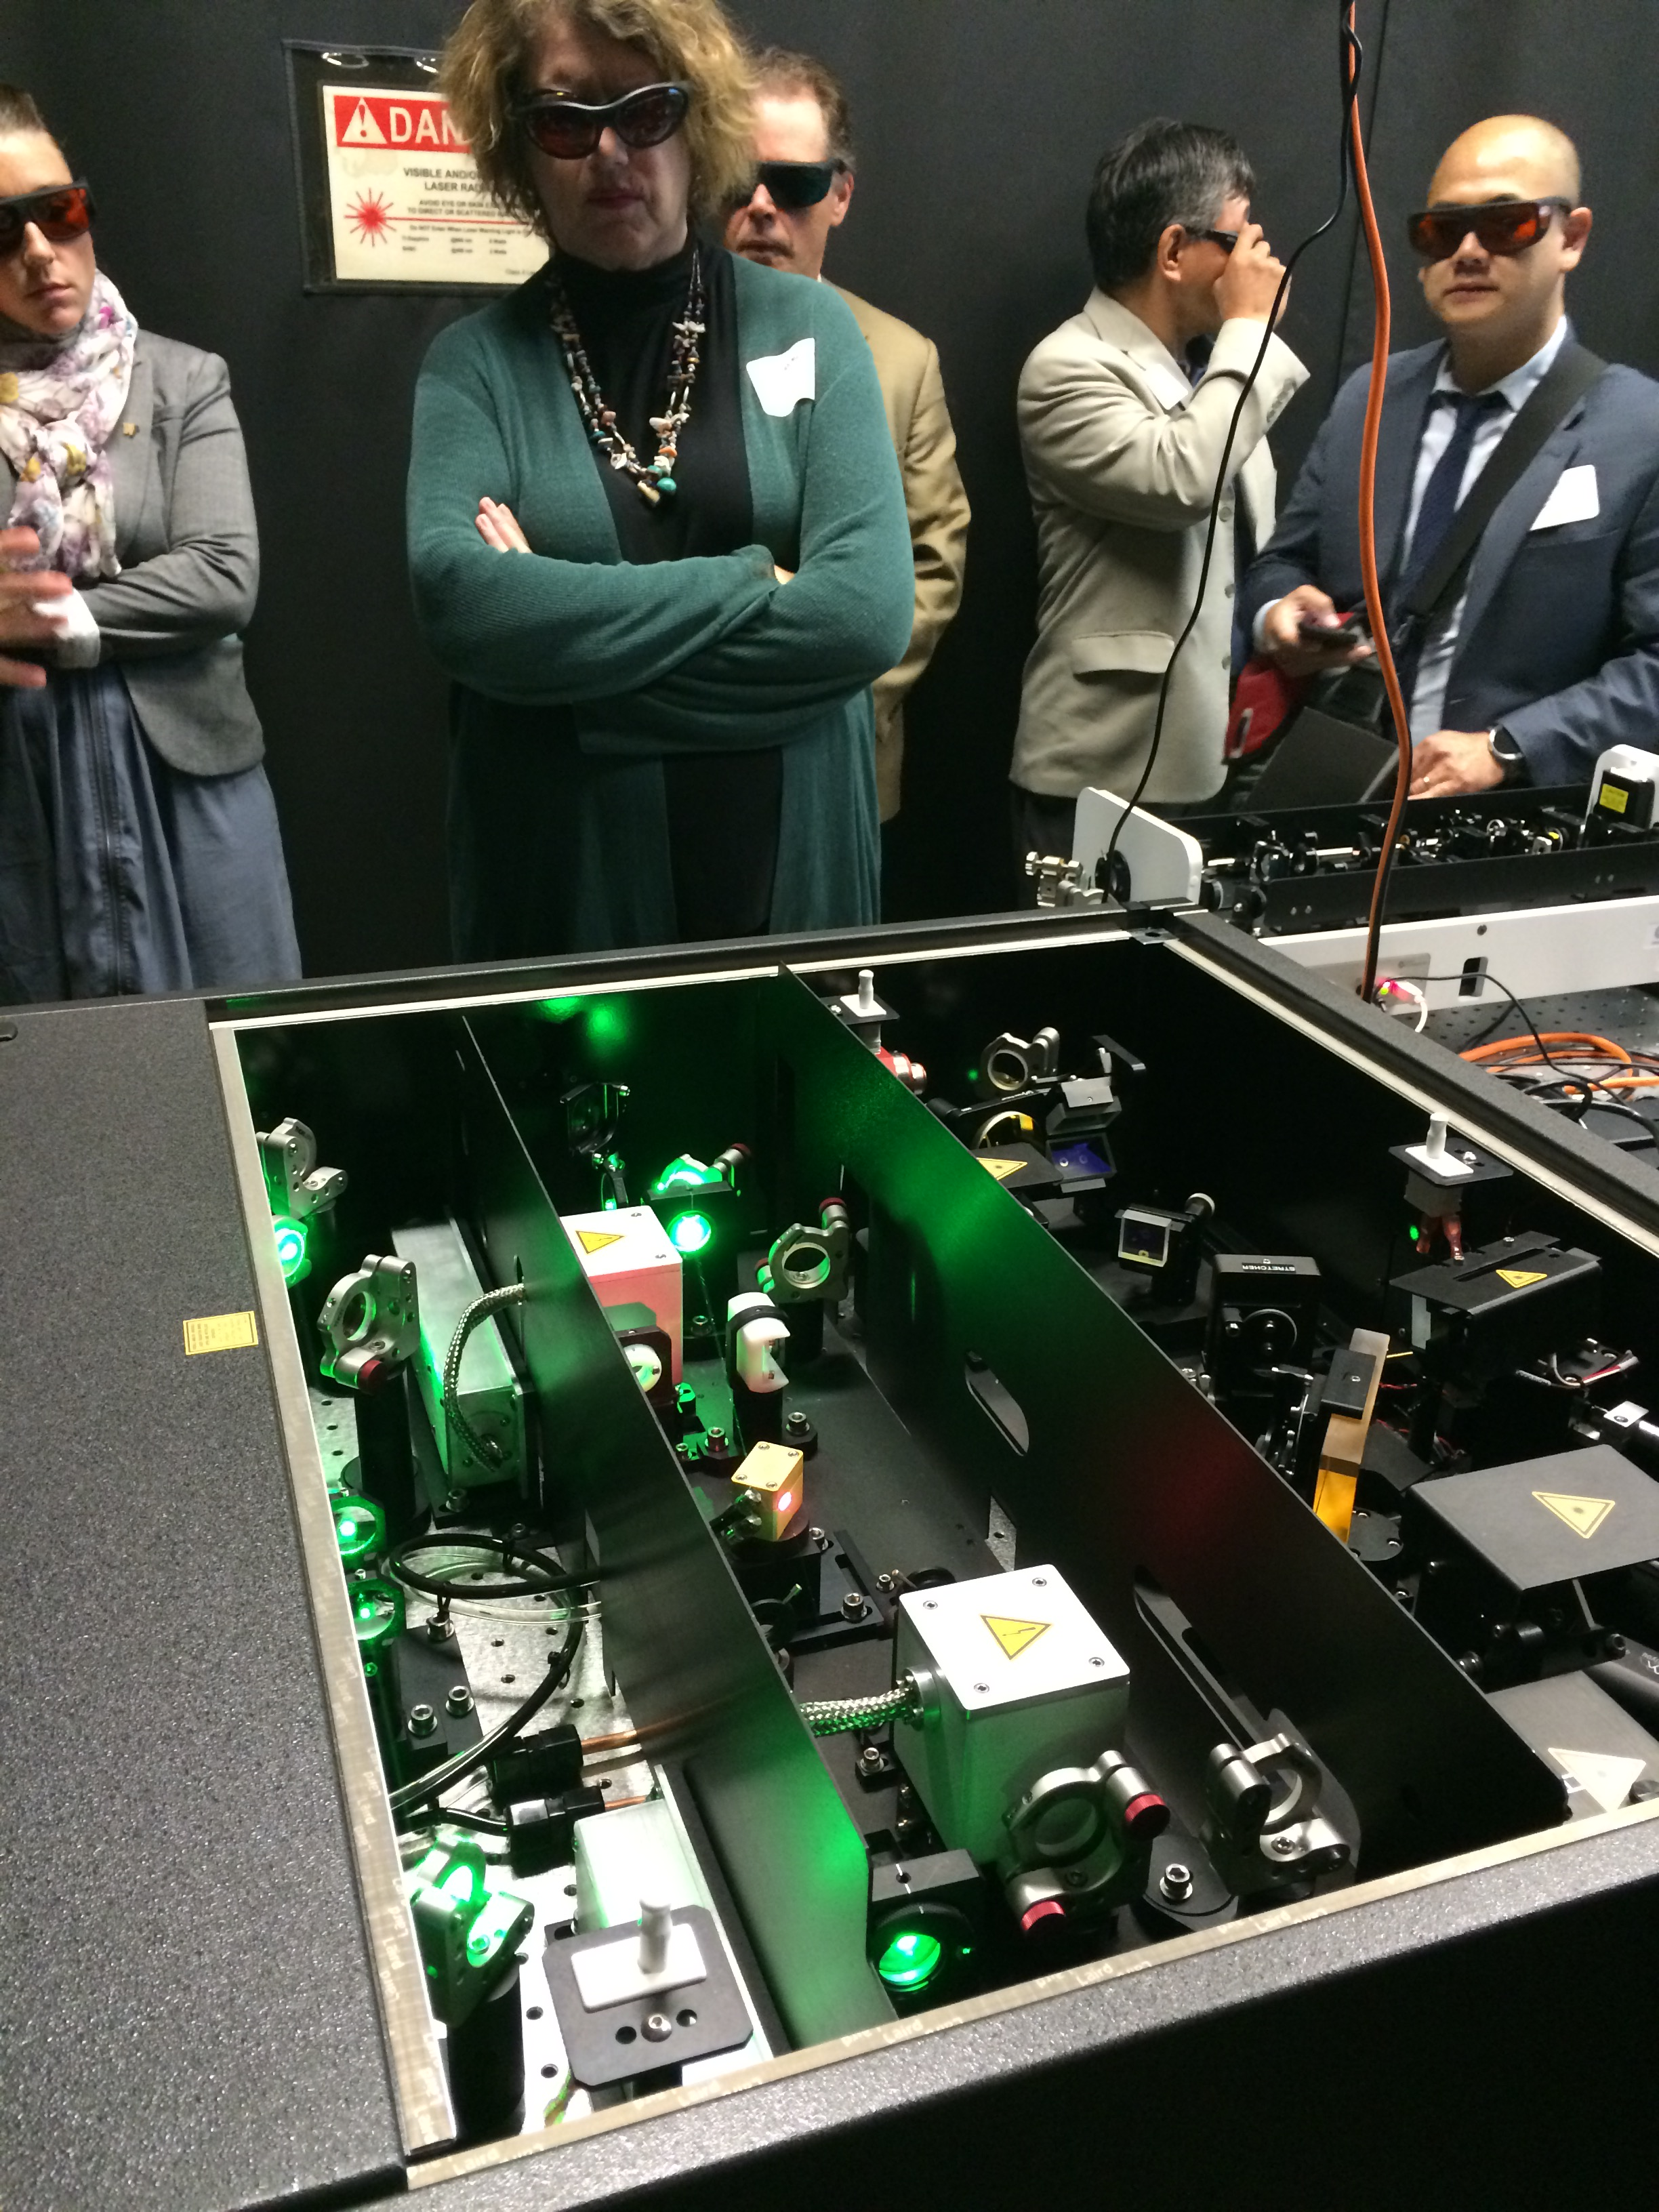 CEI tour attendees get an up close look at a high-powered laser instrument.